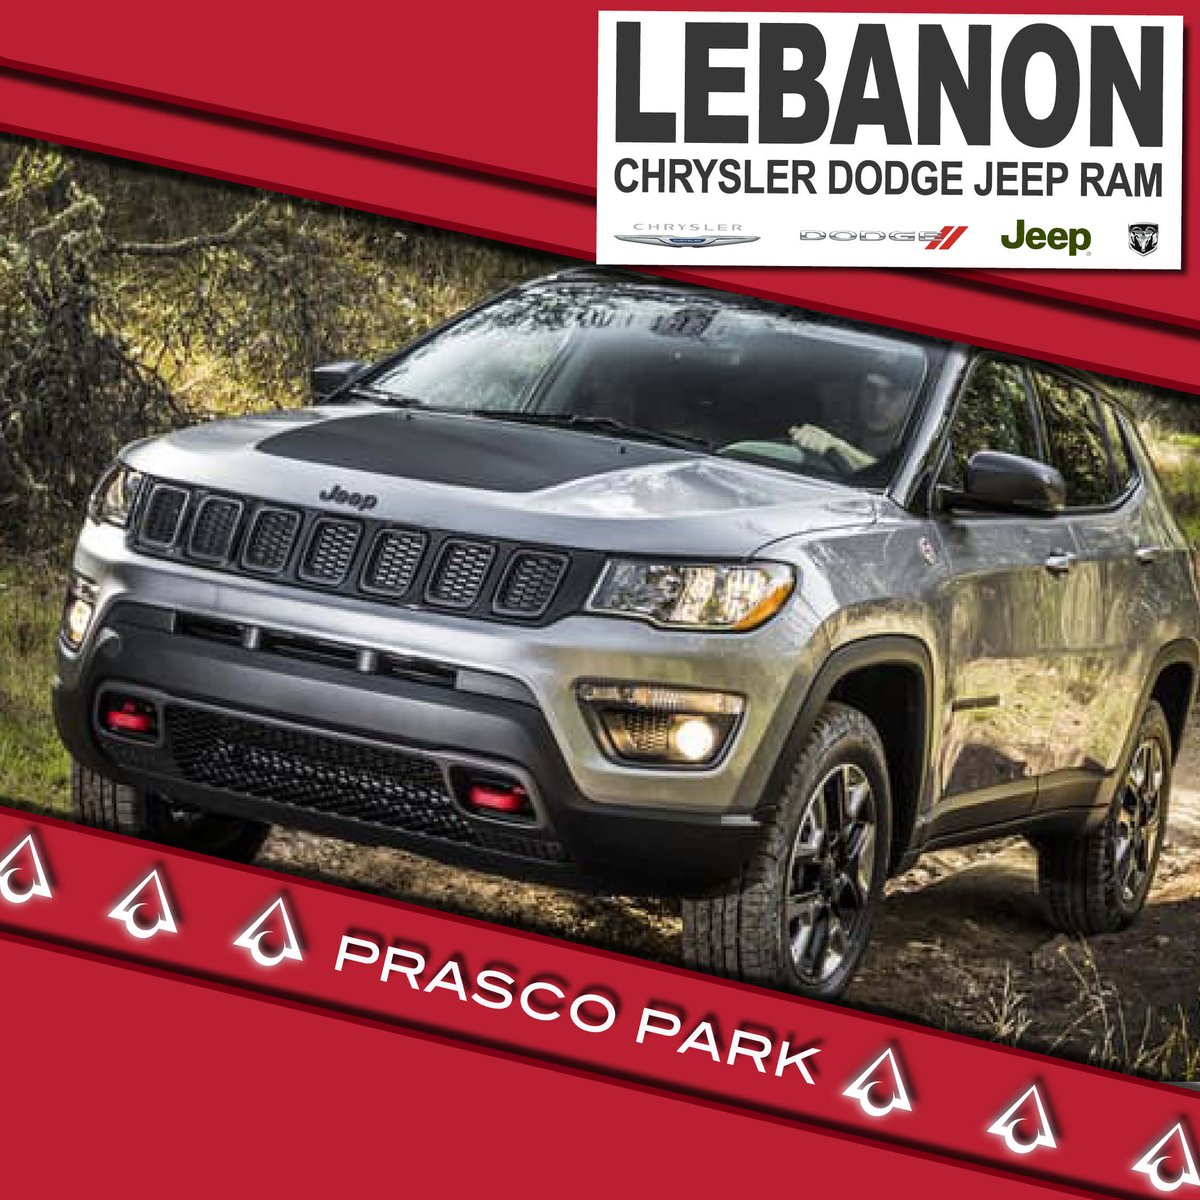 24 Month Lease >> Prasco Park On Twitter Win A Free Jeep Lease Lebanon